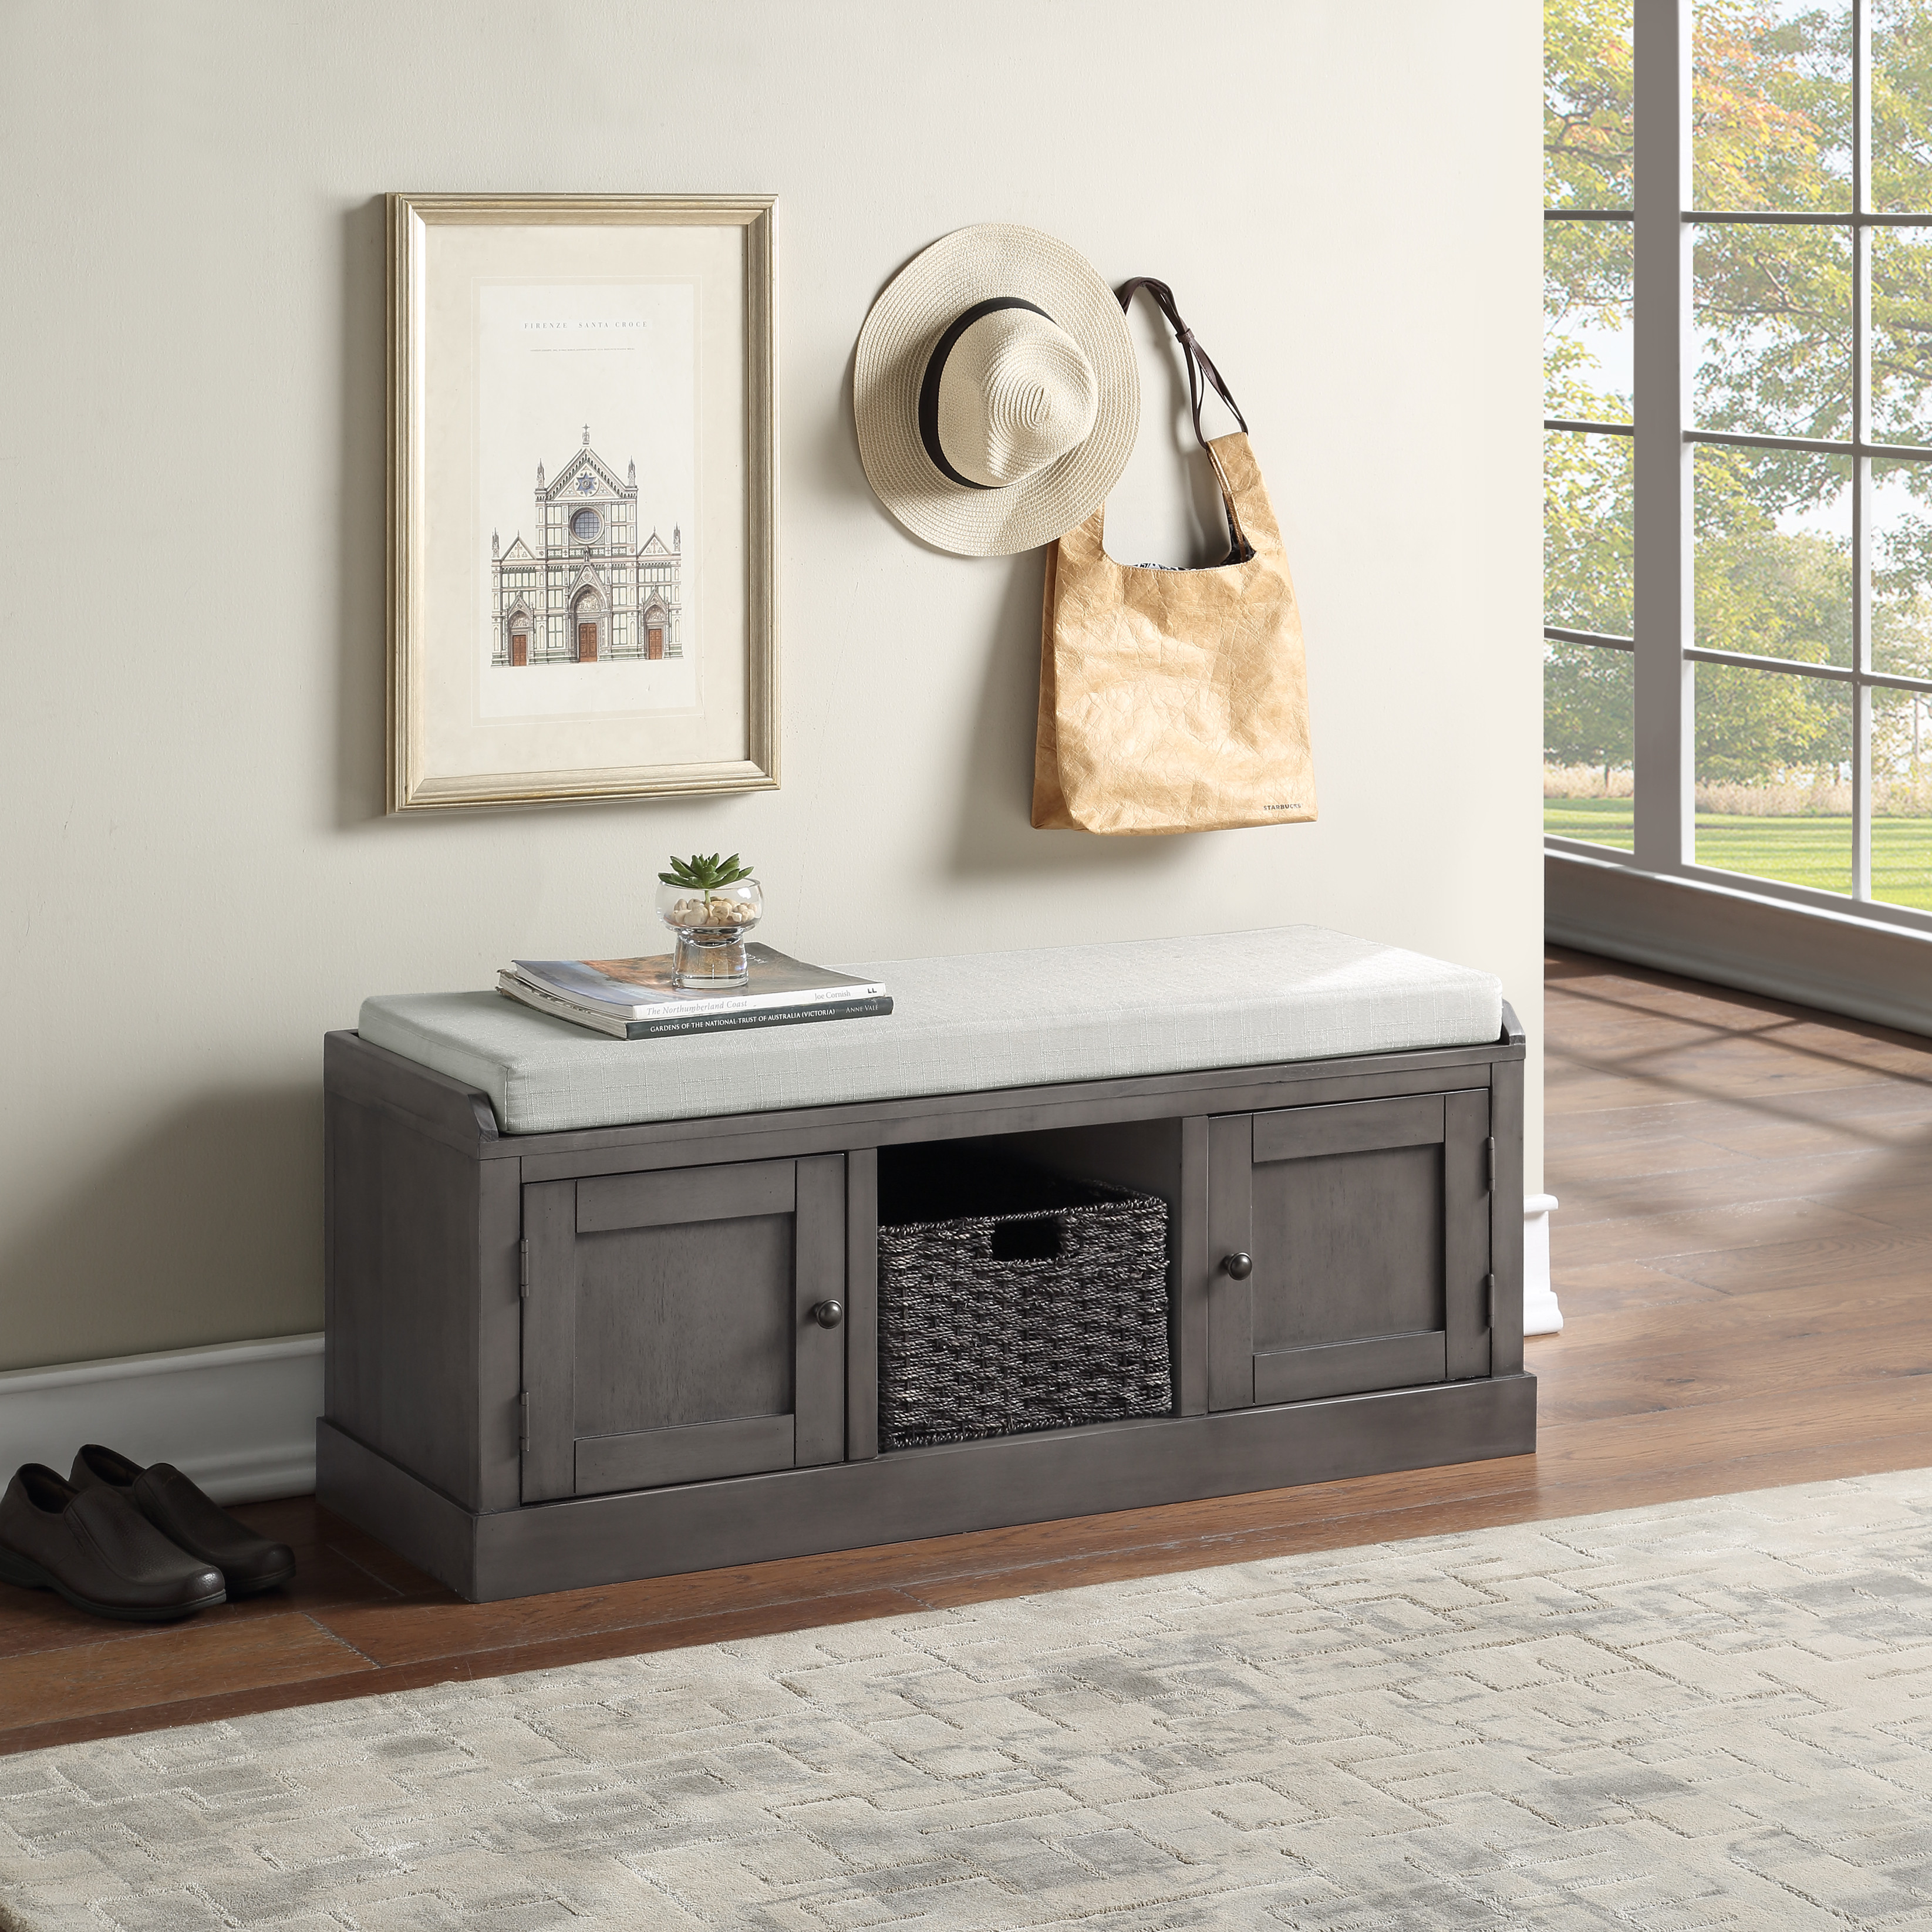 Grey Entryway Storage Bench Yofe Storage Bench With 2 Cabinets And 1 Basket Wood Entry Storage Bench With Cushion Rustic Shoe Bench Storage Bench For Entryway Hallway Mudroom Living Room R3488